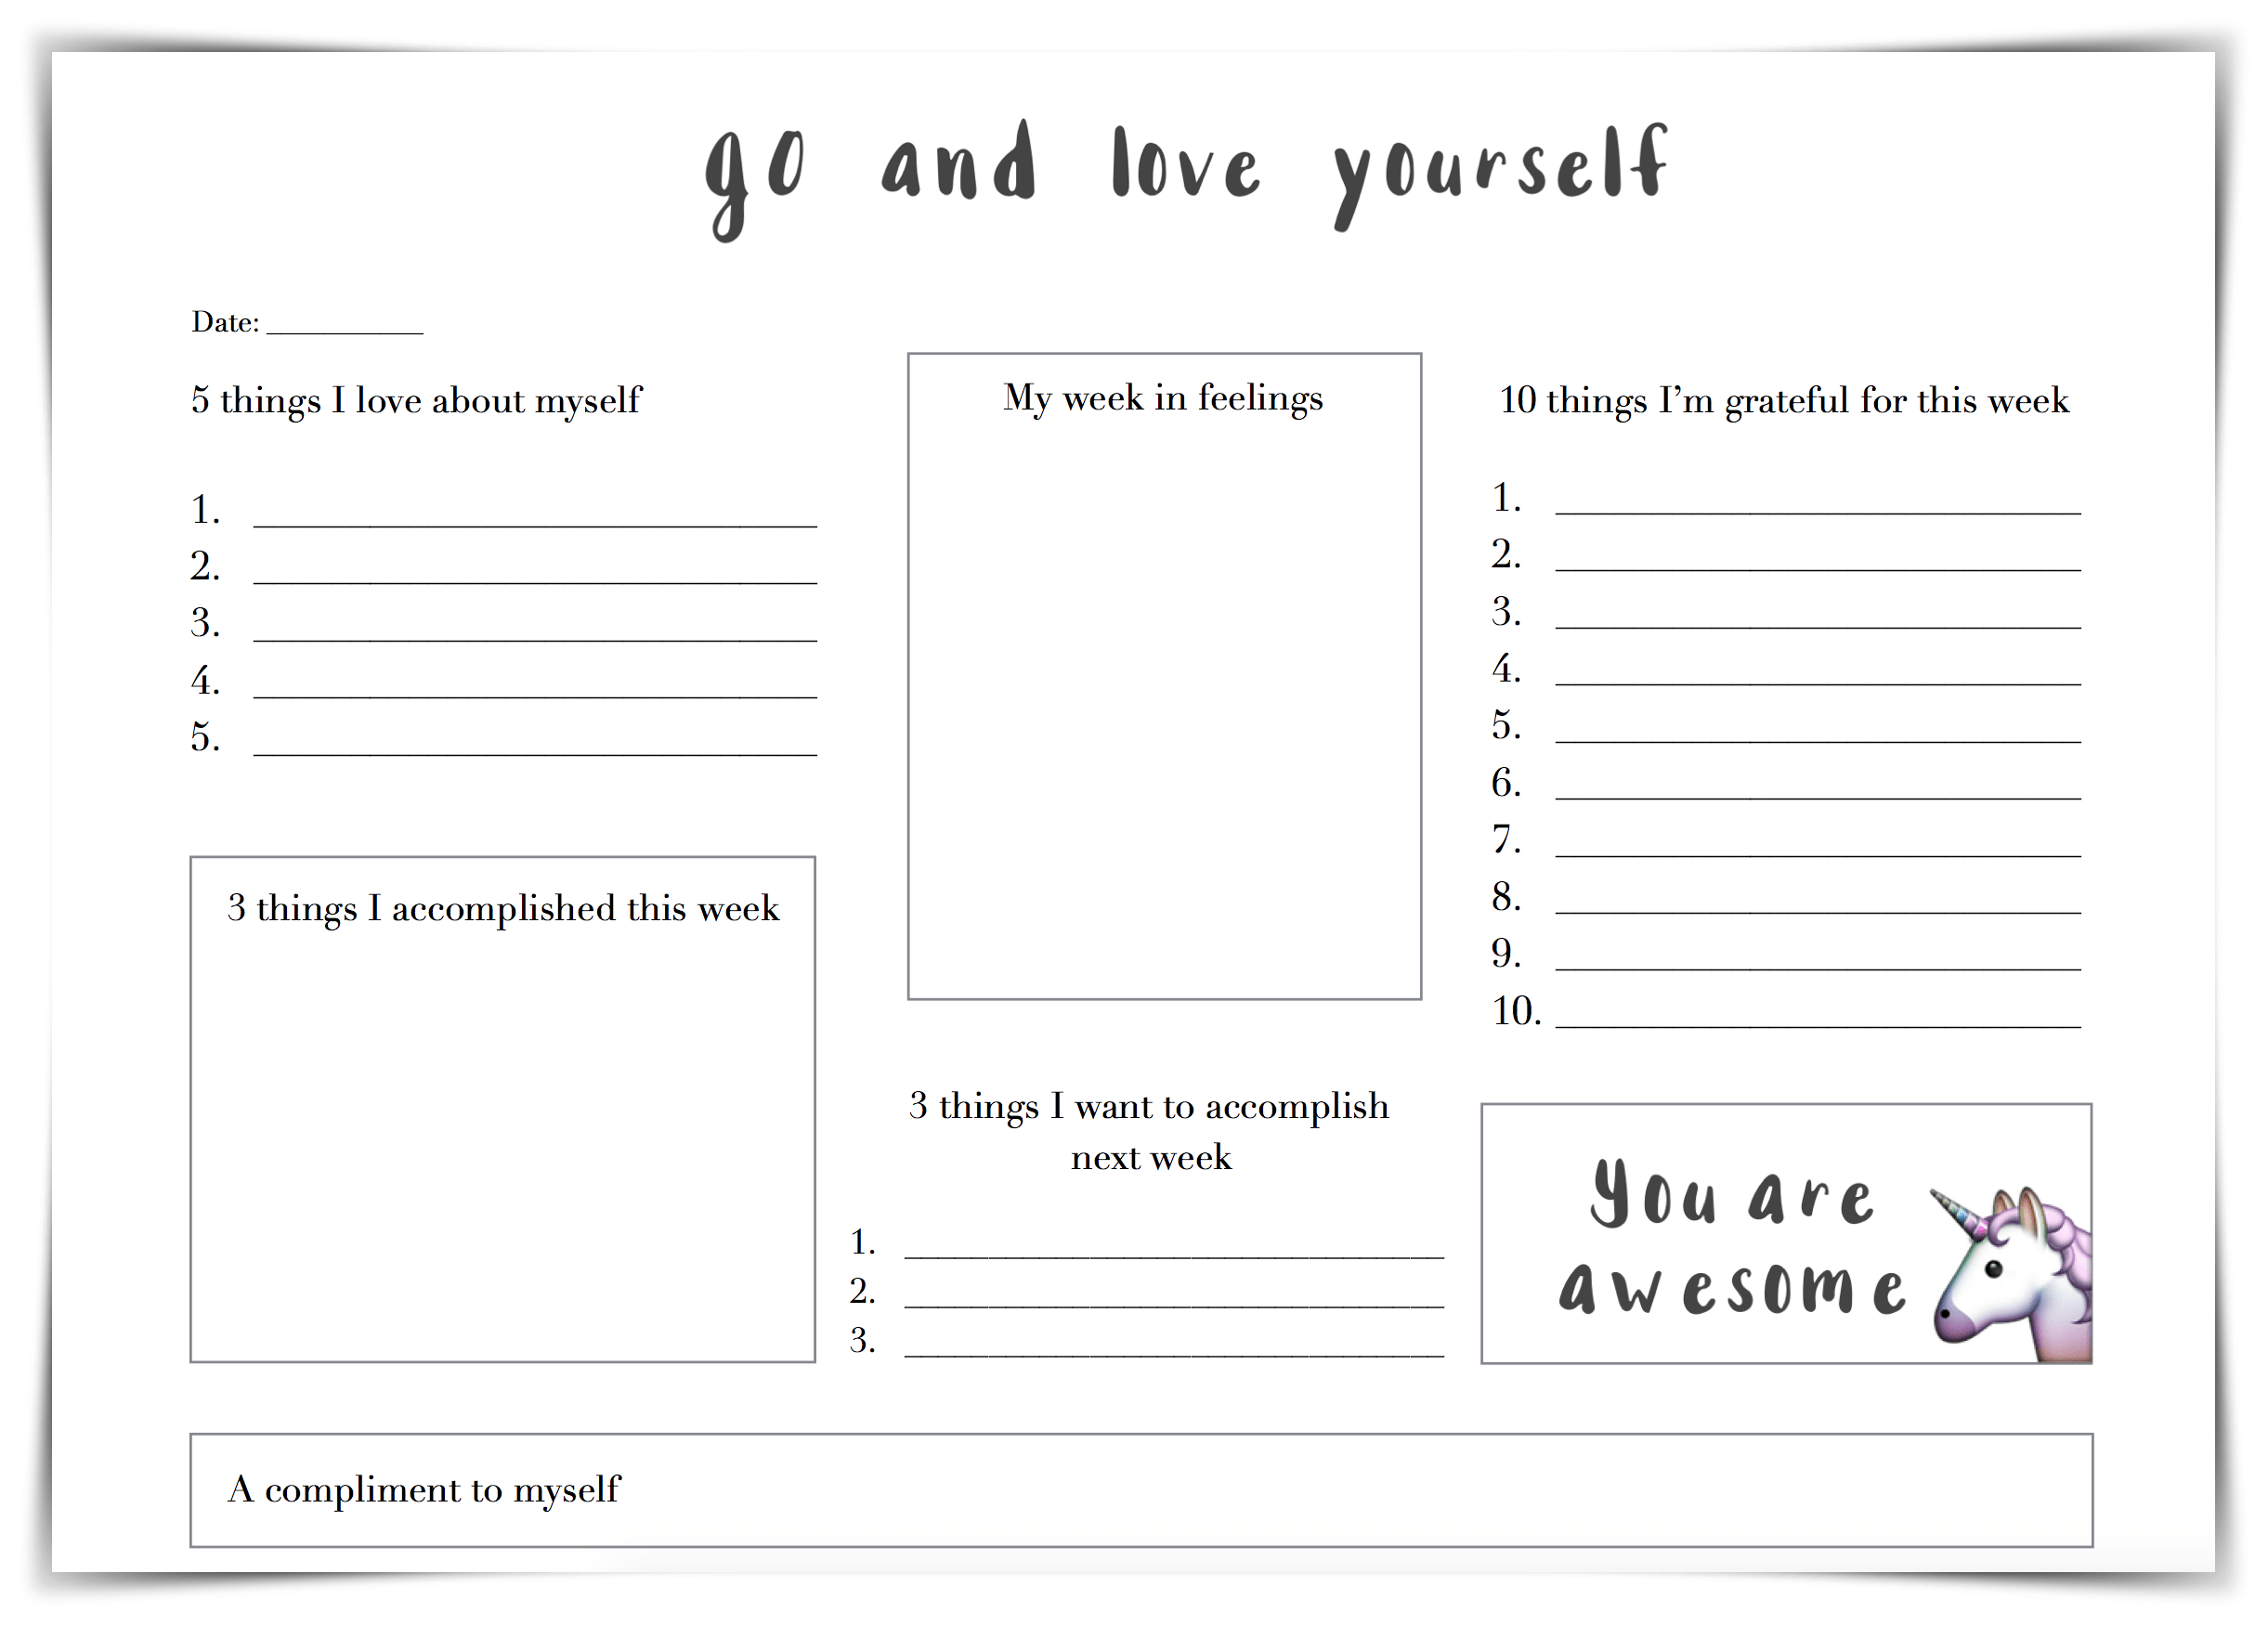 worksheet Printable Self Esteem Worksheets self confidence worksheets free library download and unc teg ized build g esteem w ksheets klimttreeofl e